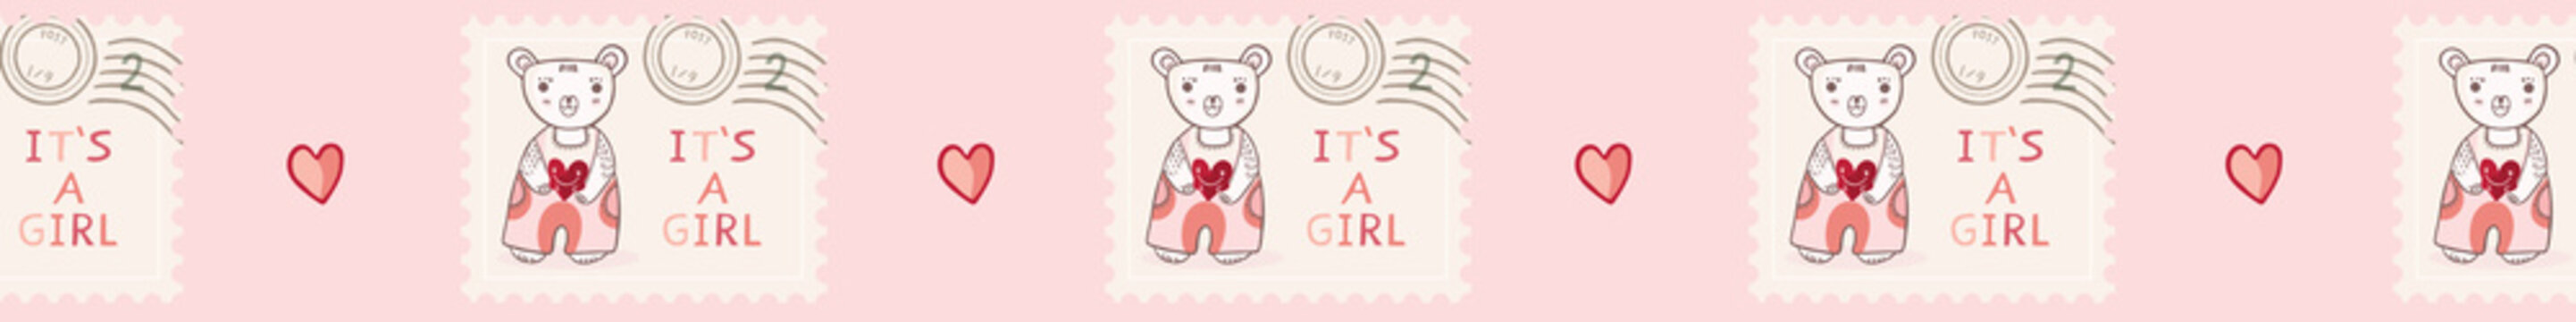 Cute it's a girl teddy bear postage stamp seamless vector border. New baby announcement in pink cartoon style. Hand drawn adorable babies shower banner ribbon illustration.